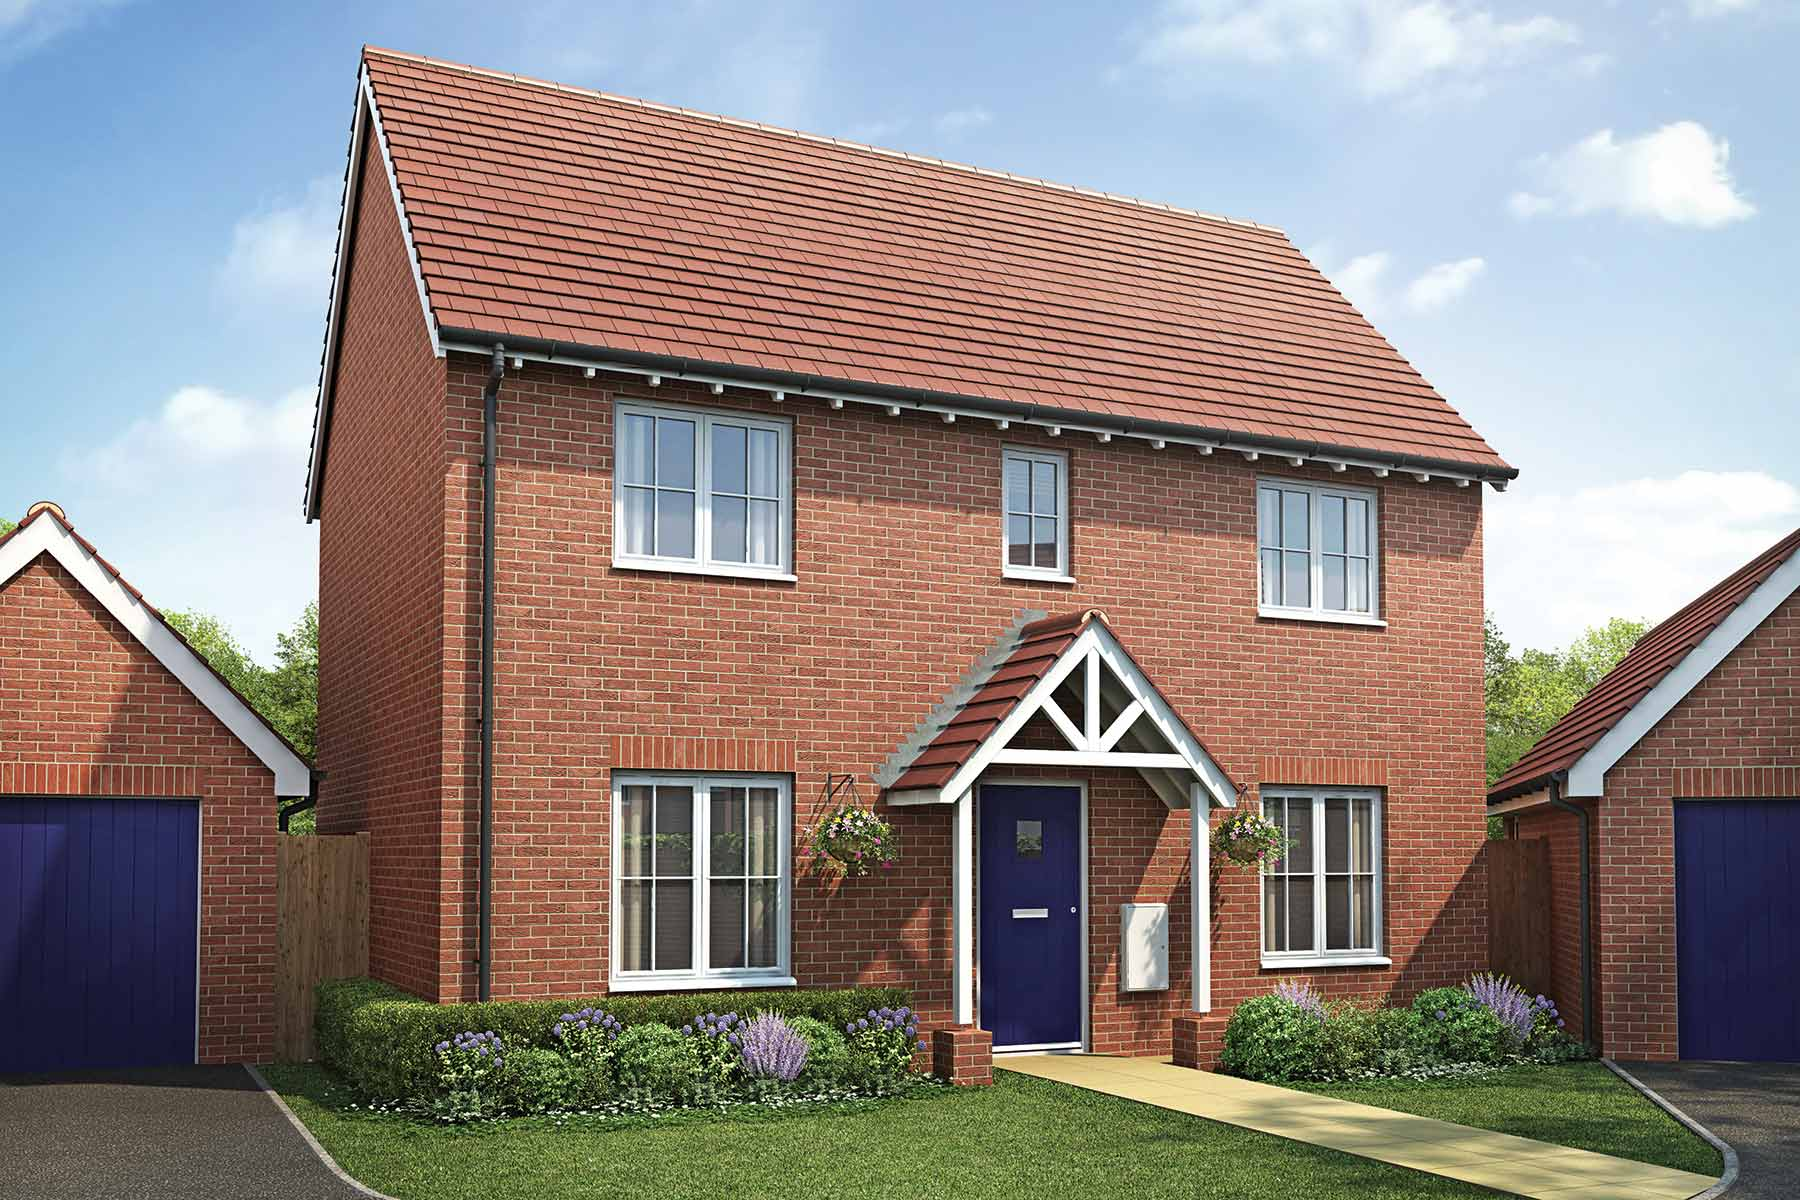 The Yewdale, Taylor Wimpey at Olstead Grange, Felsted, Essex